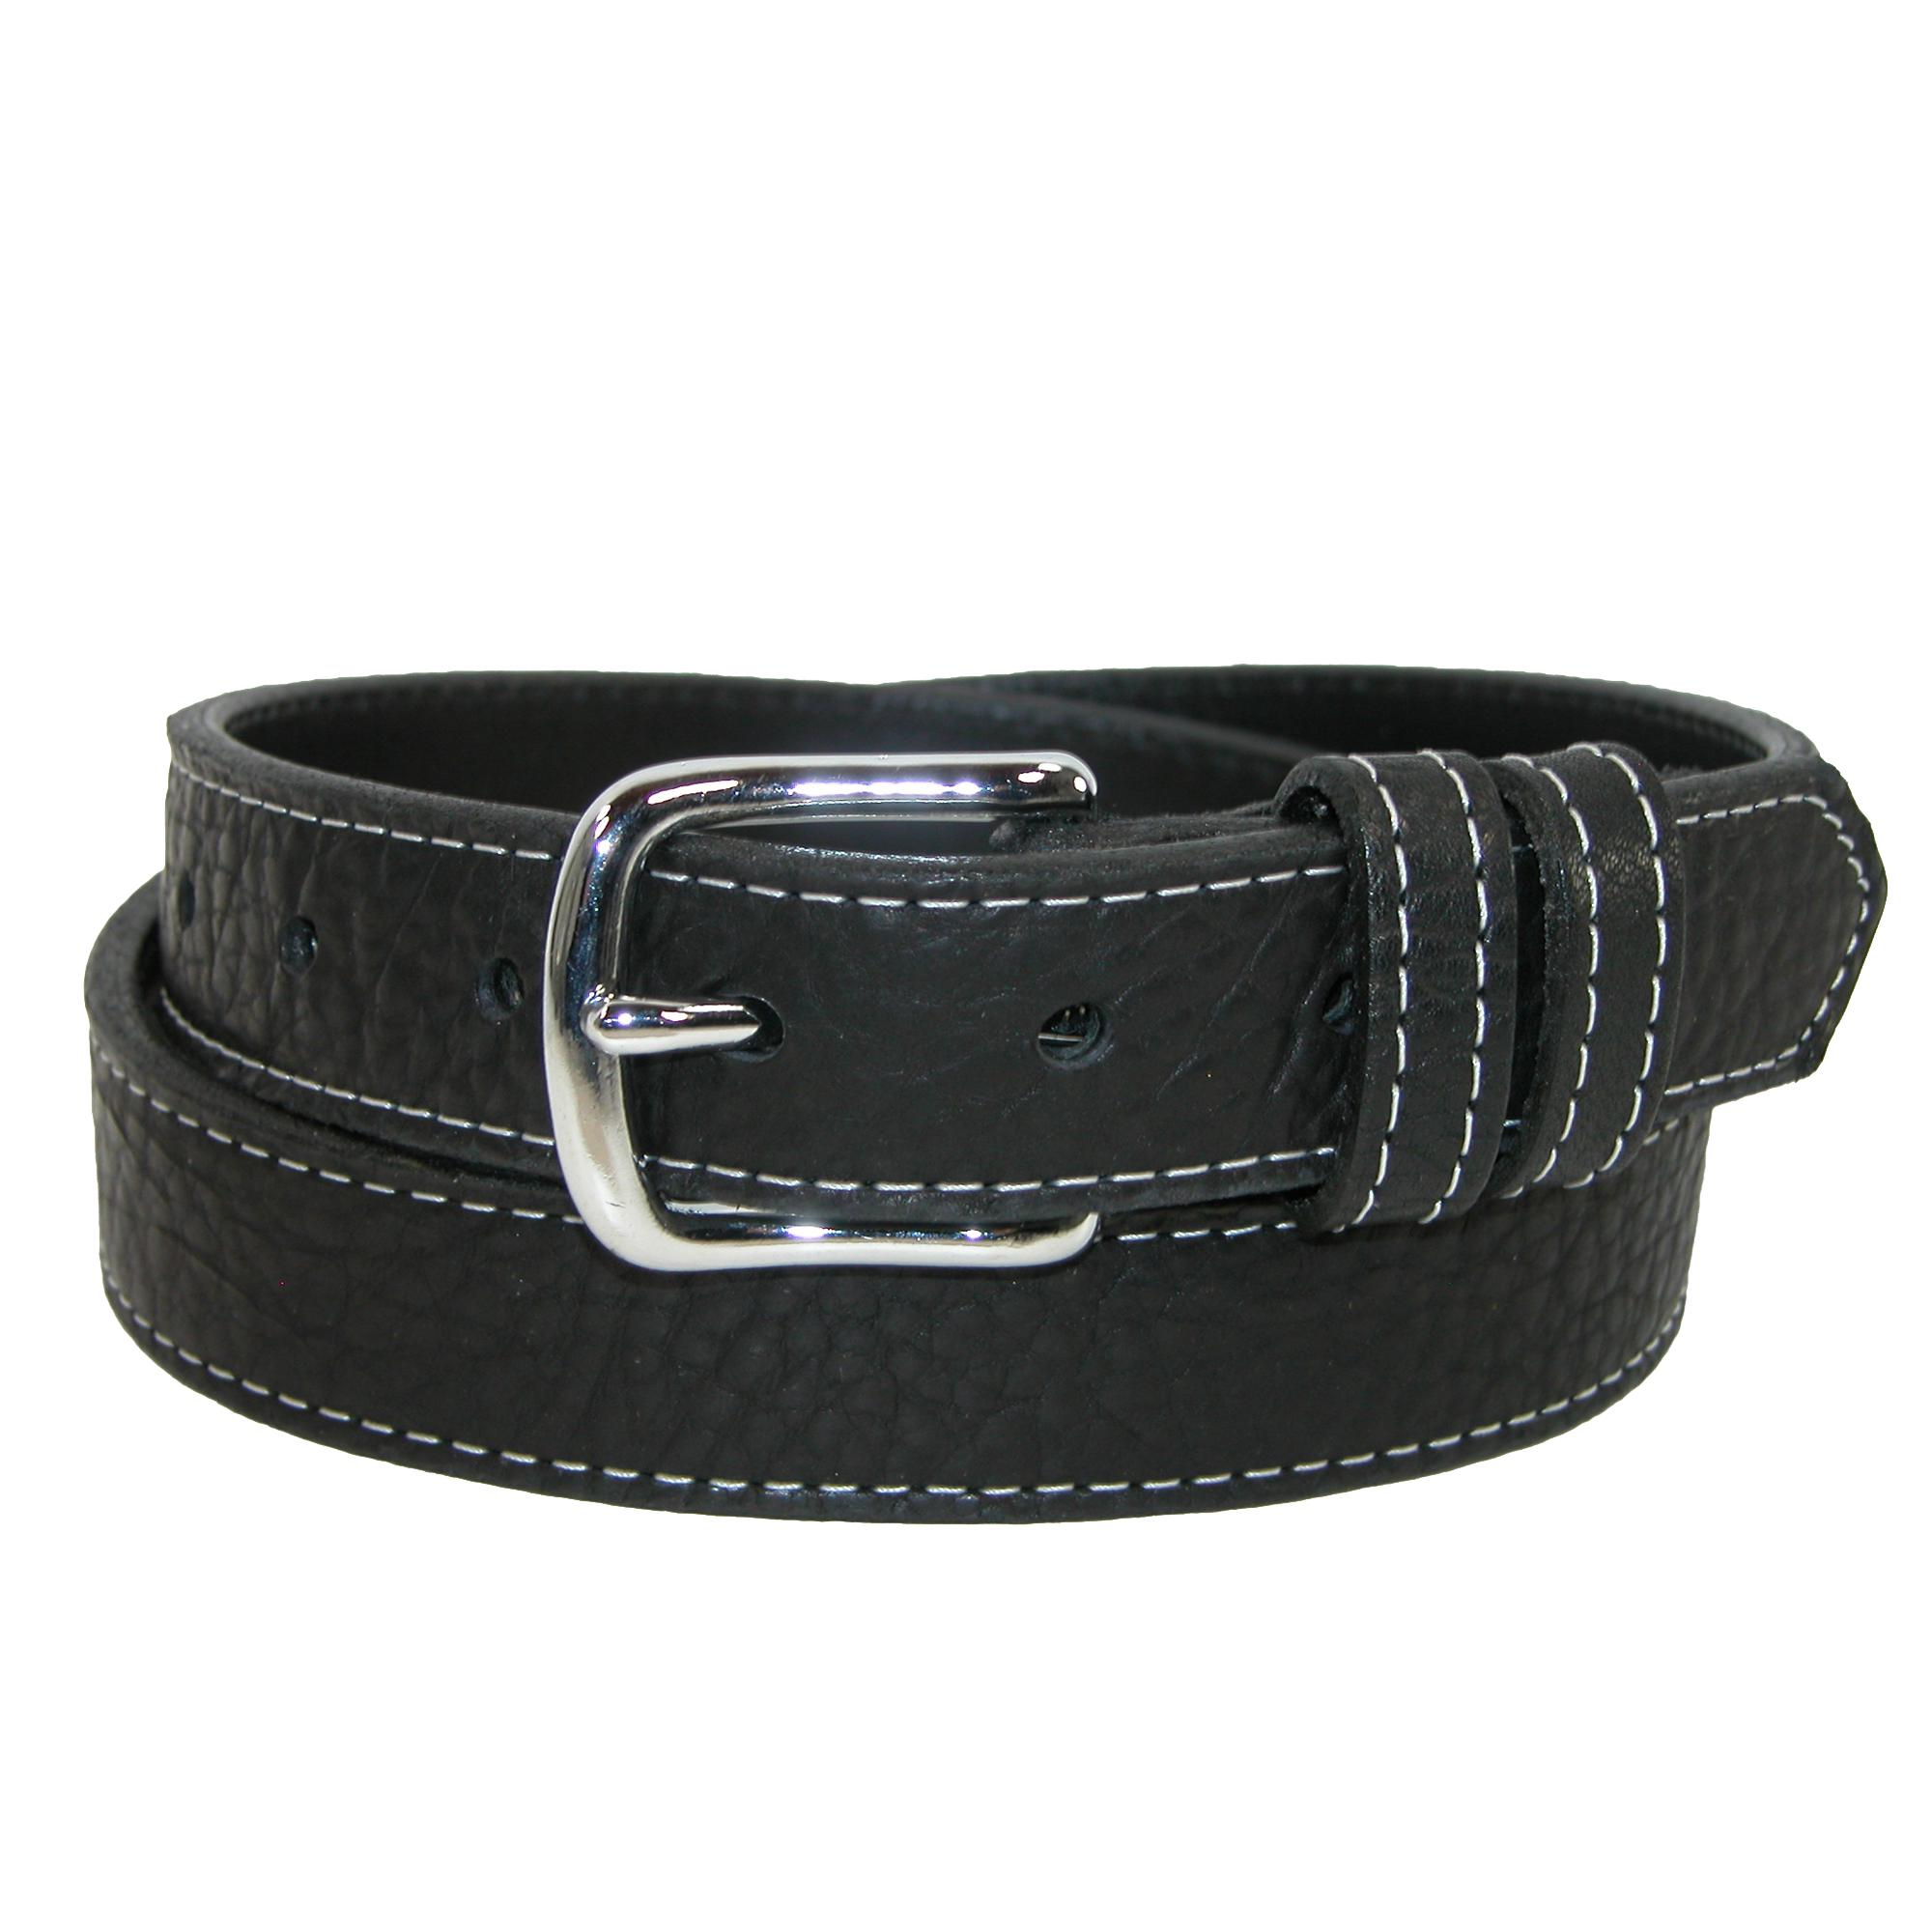 Boston Leather Men's Grizzley Bison Leather With Contrast Stitch Belt